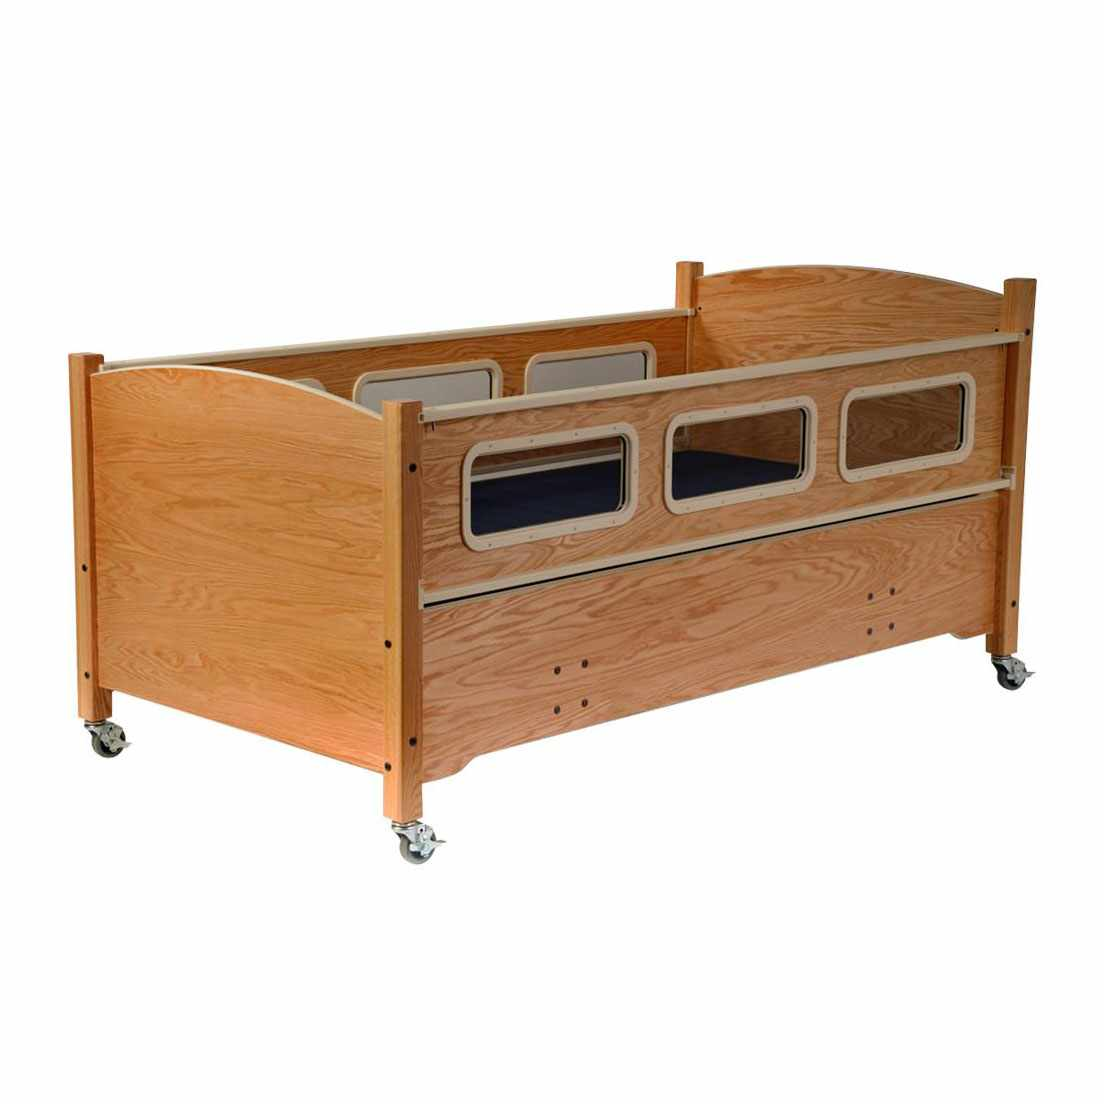 SleepSafe low bed with electric plus articulating